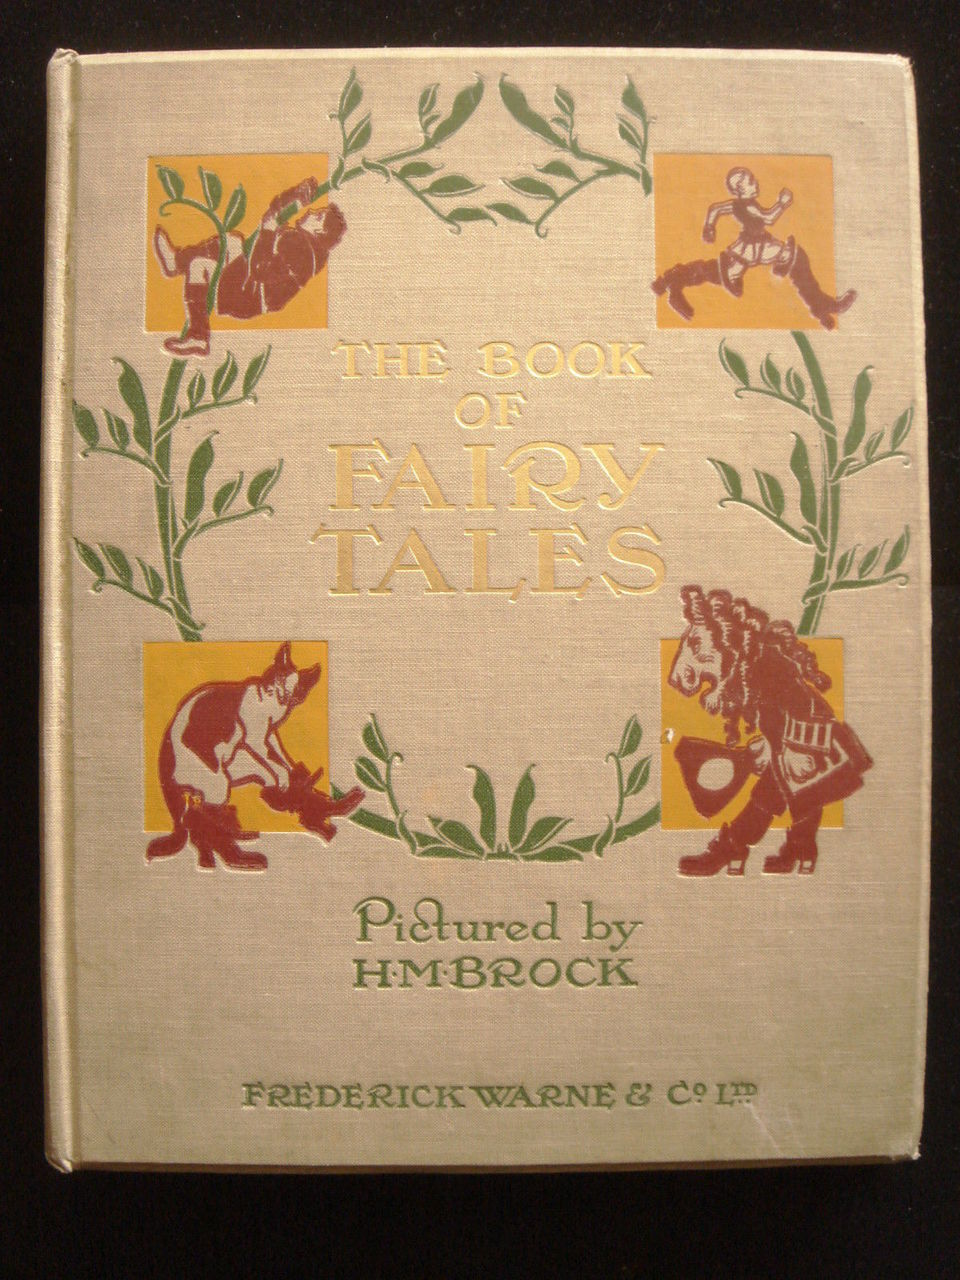 THE BOOK OF FAIRY TALES illustrated by HM brock, F WARNE, c.1916, Children's